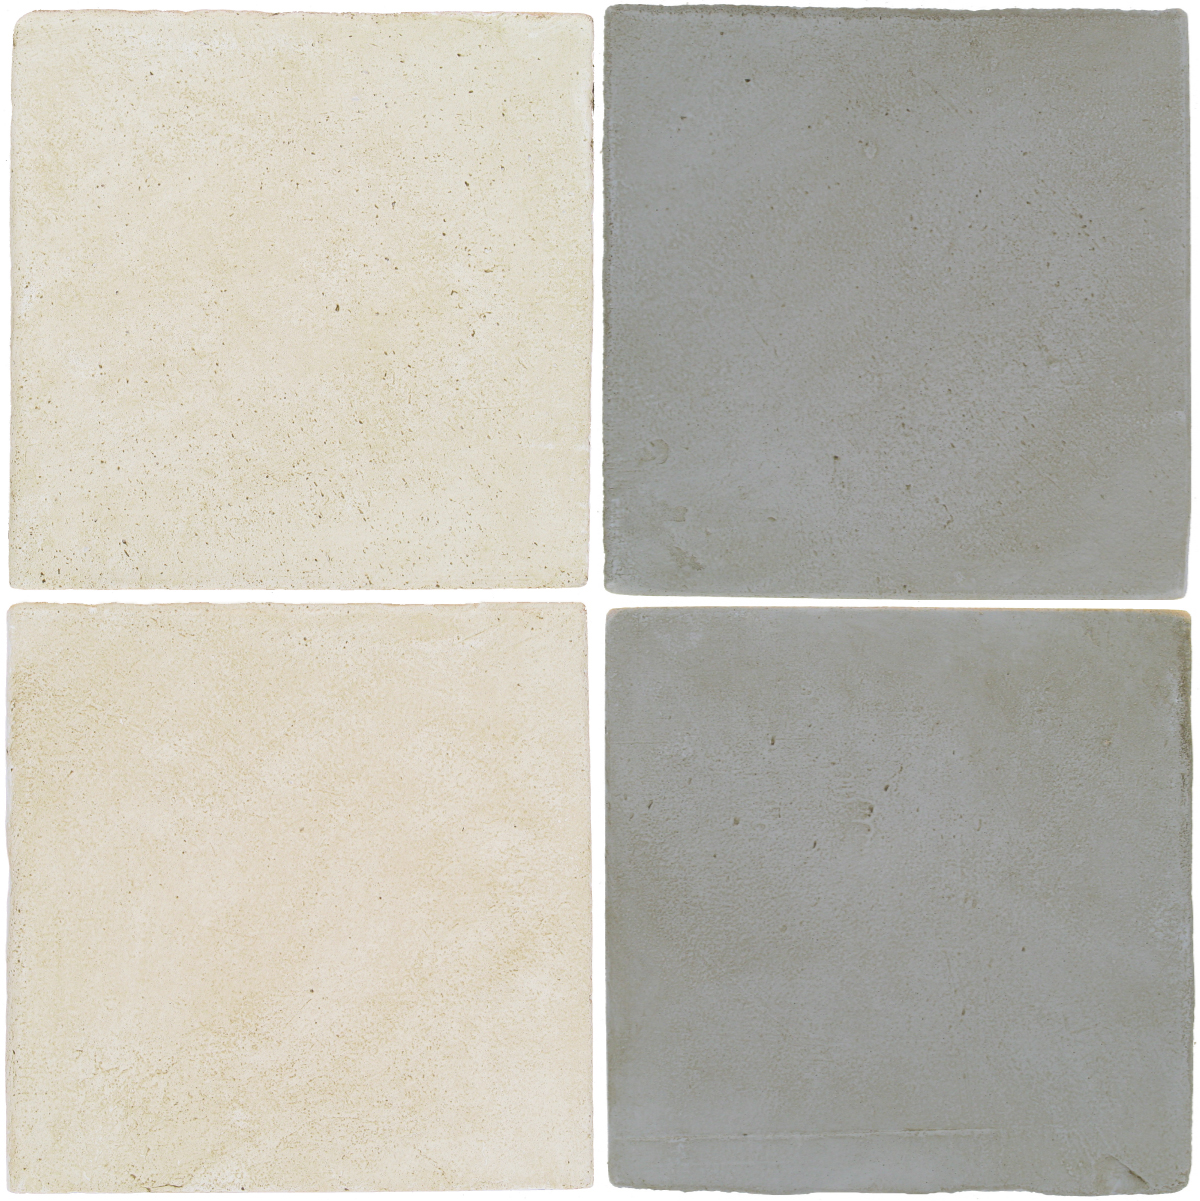 Pedralbes Antique Terracotta  2 Color Combinations  OHS-PGAW Antique White + OHS-PGOG Oyster Grey